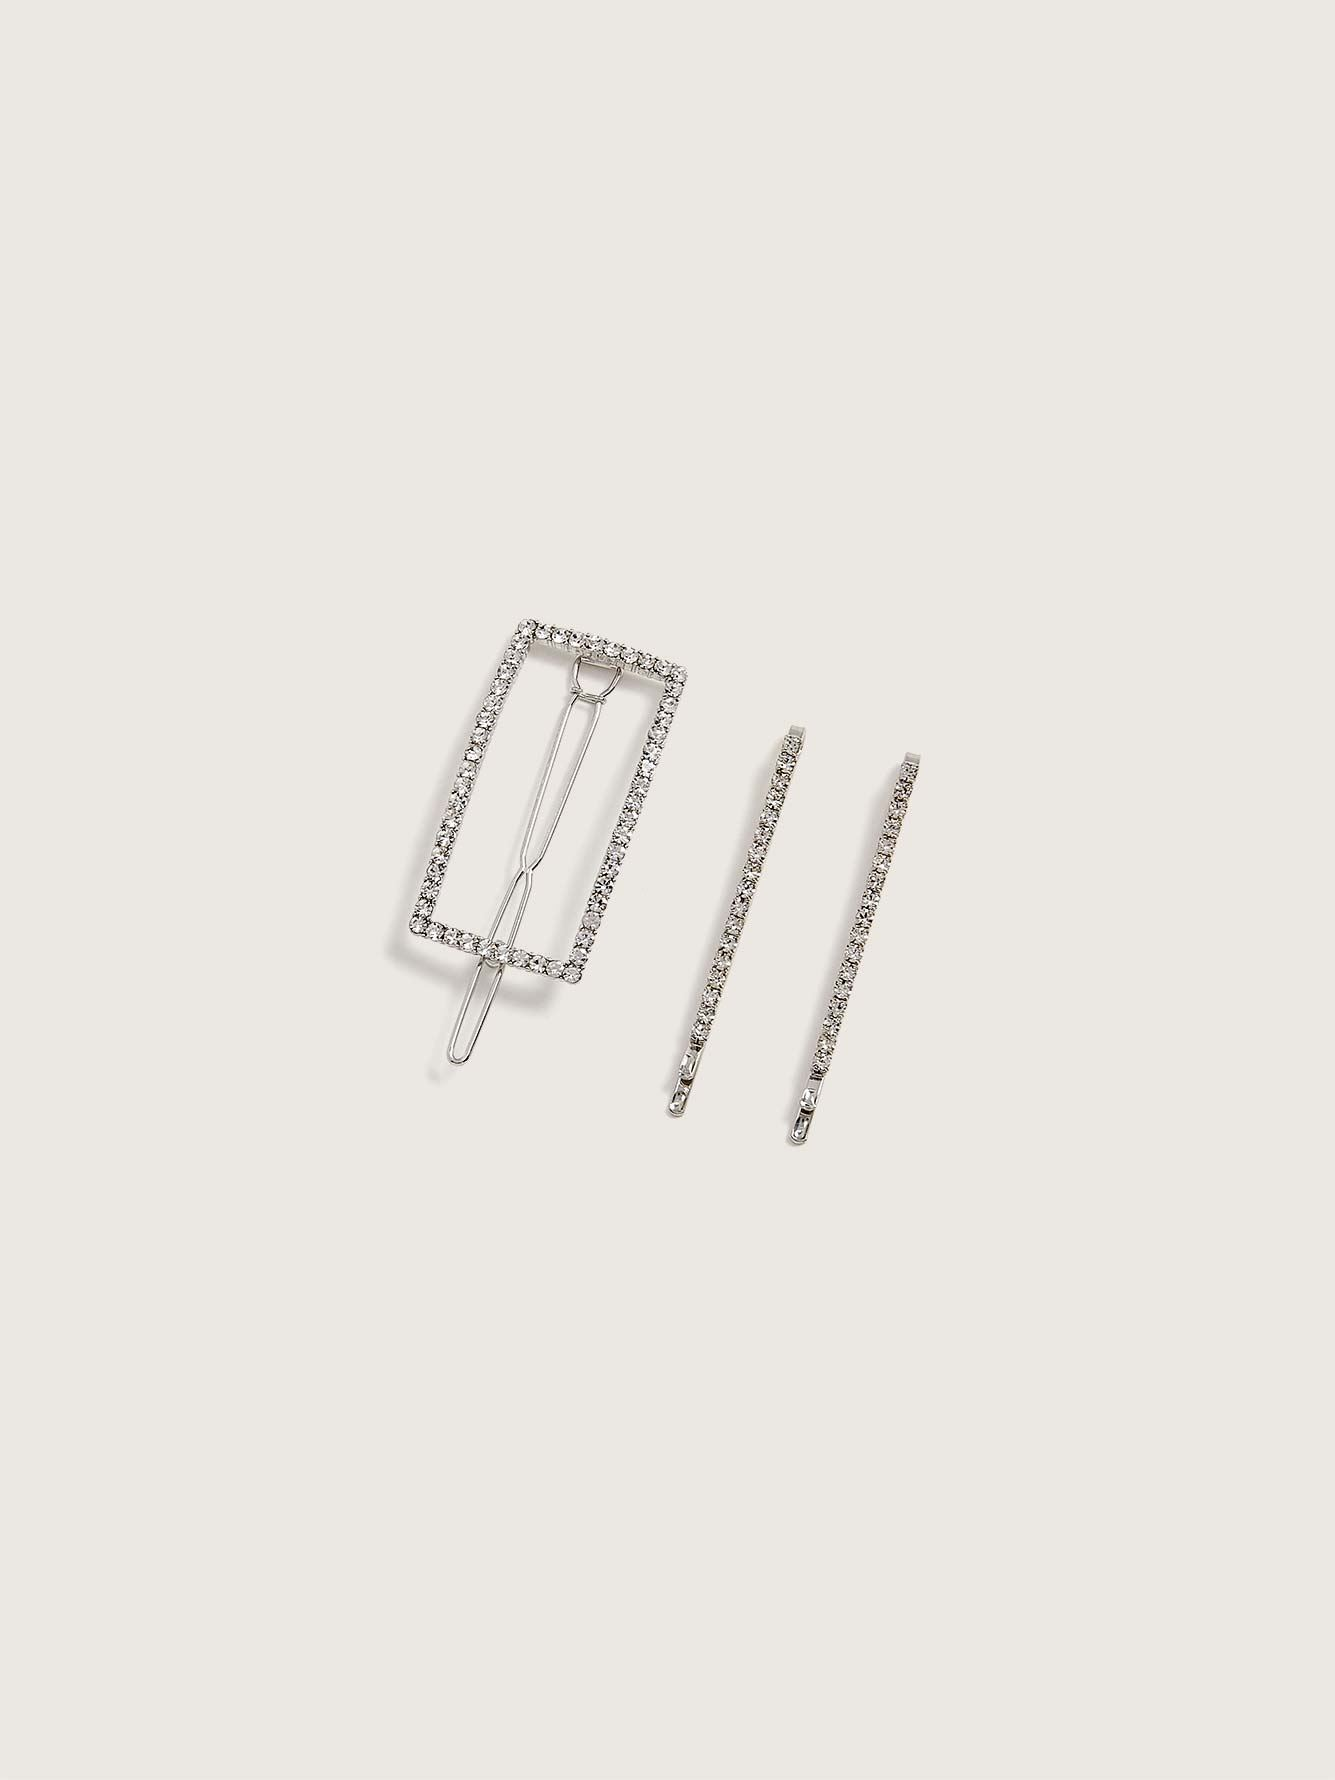 Rhinestone Barrette and Clips, 3-Pack - Addition Elle